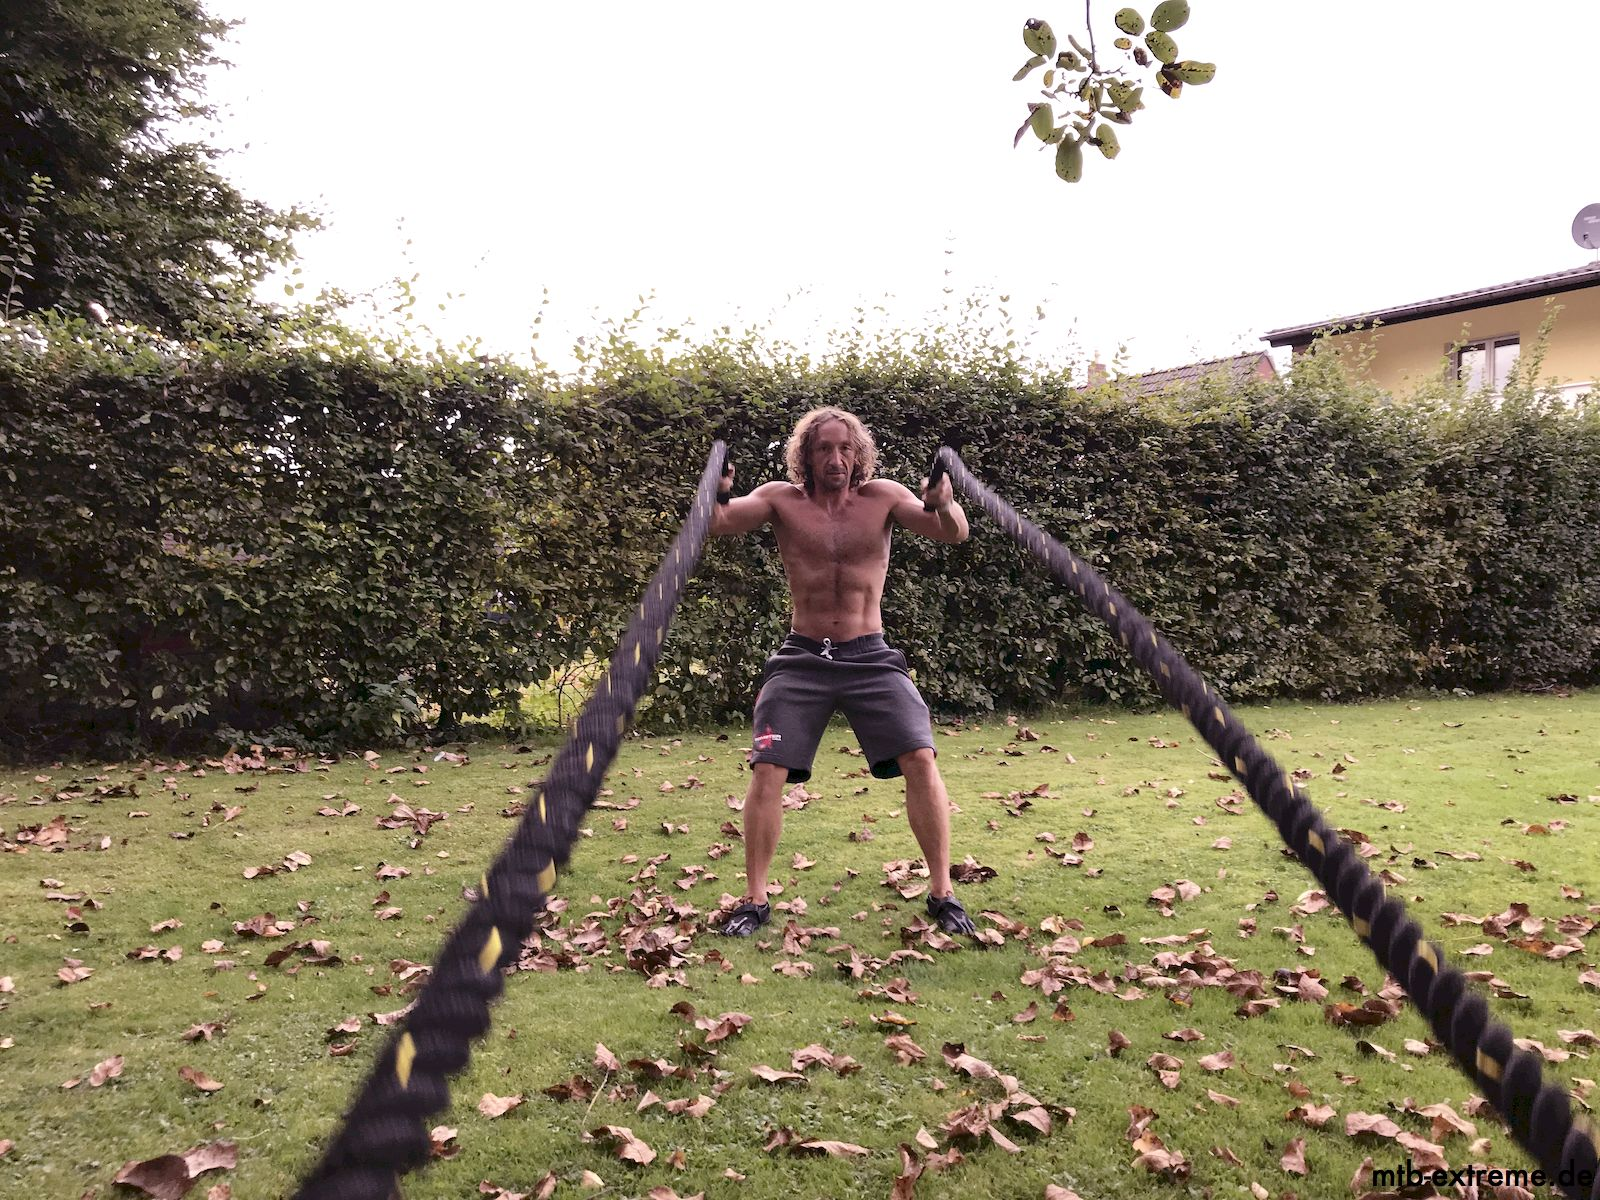 Battle-Rope-Training - Waves